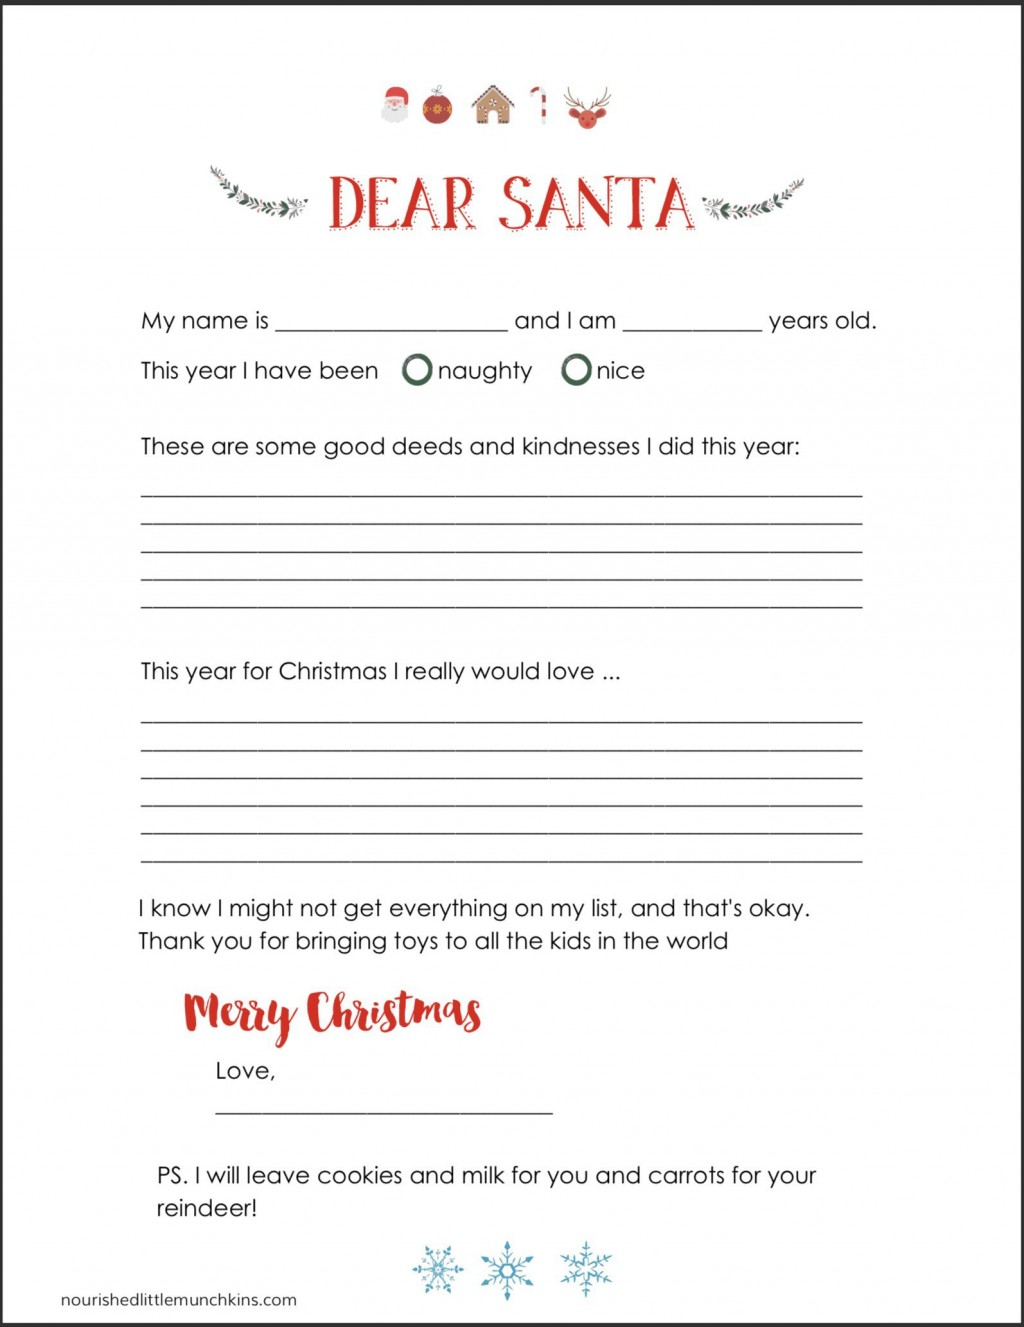 008 Wondrou Letter From Santa Template Example  Free Printable Word Doc UkLarge